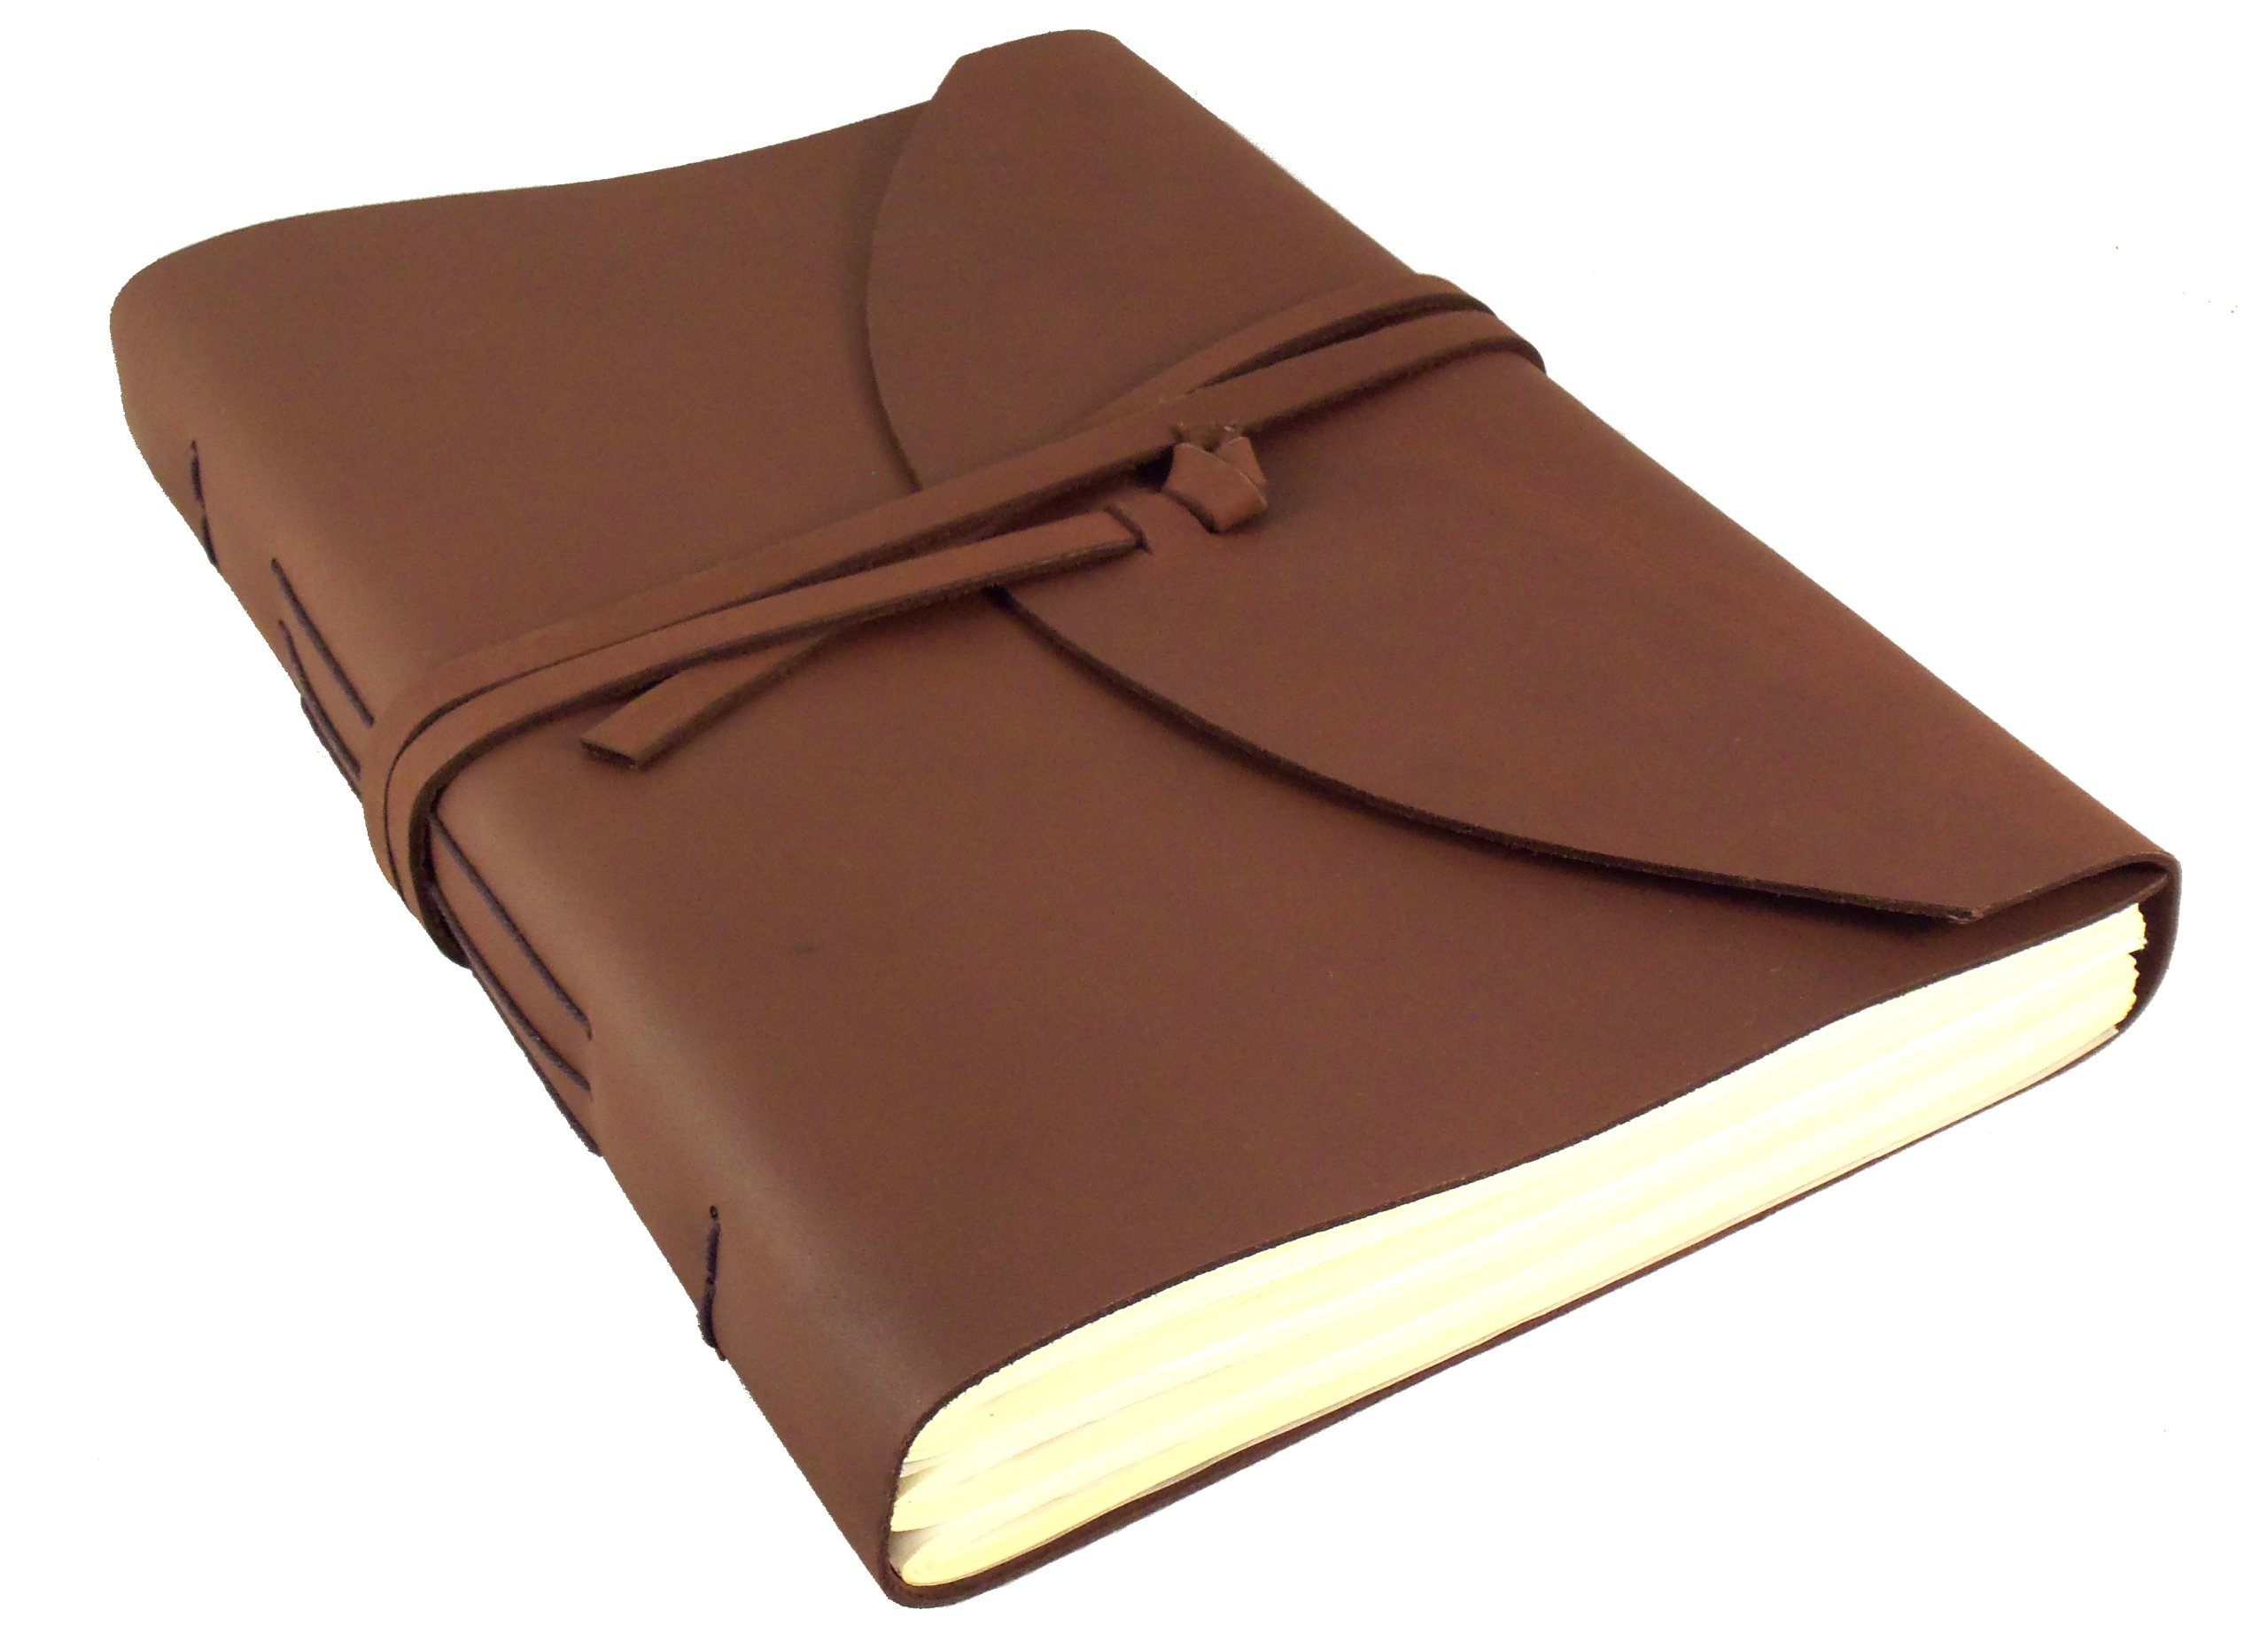 Large Genuine Leather Legacy Journal/Sketchbook with Gift Box - 400 Pages - 9'' x 12'' - Rich Dark Brown